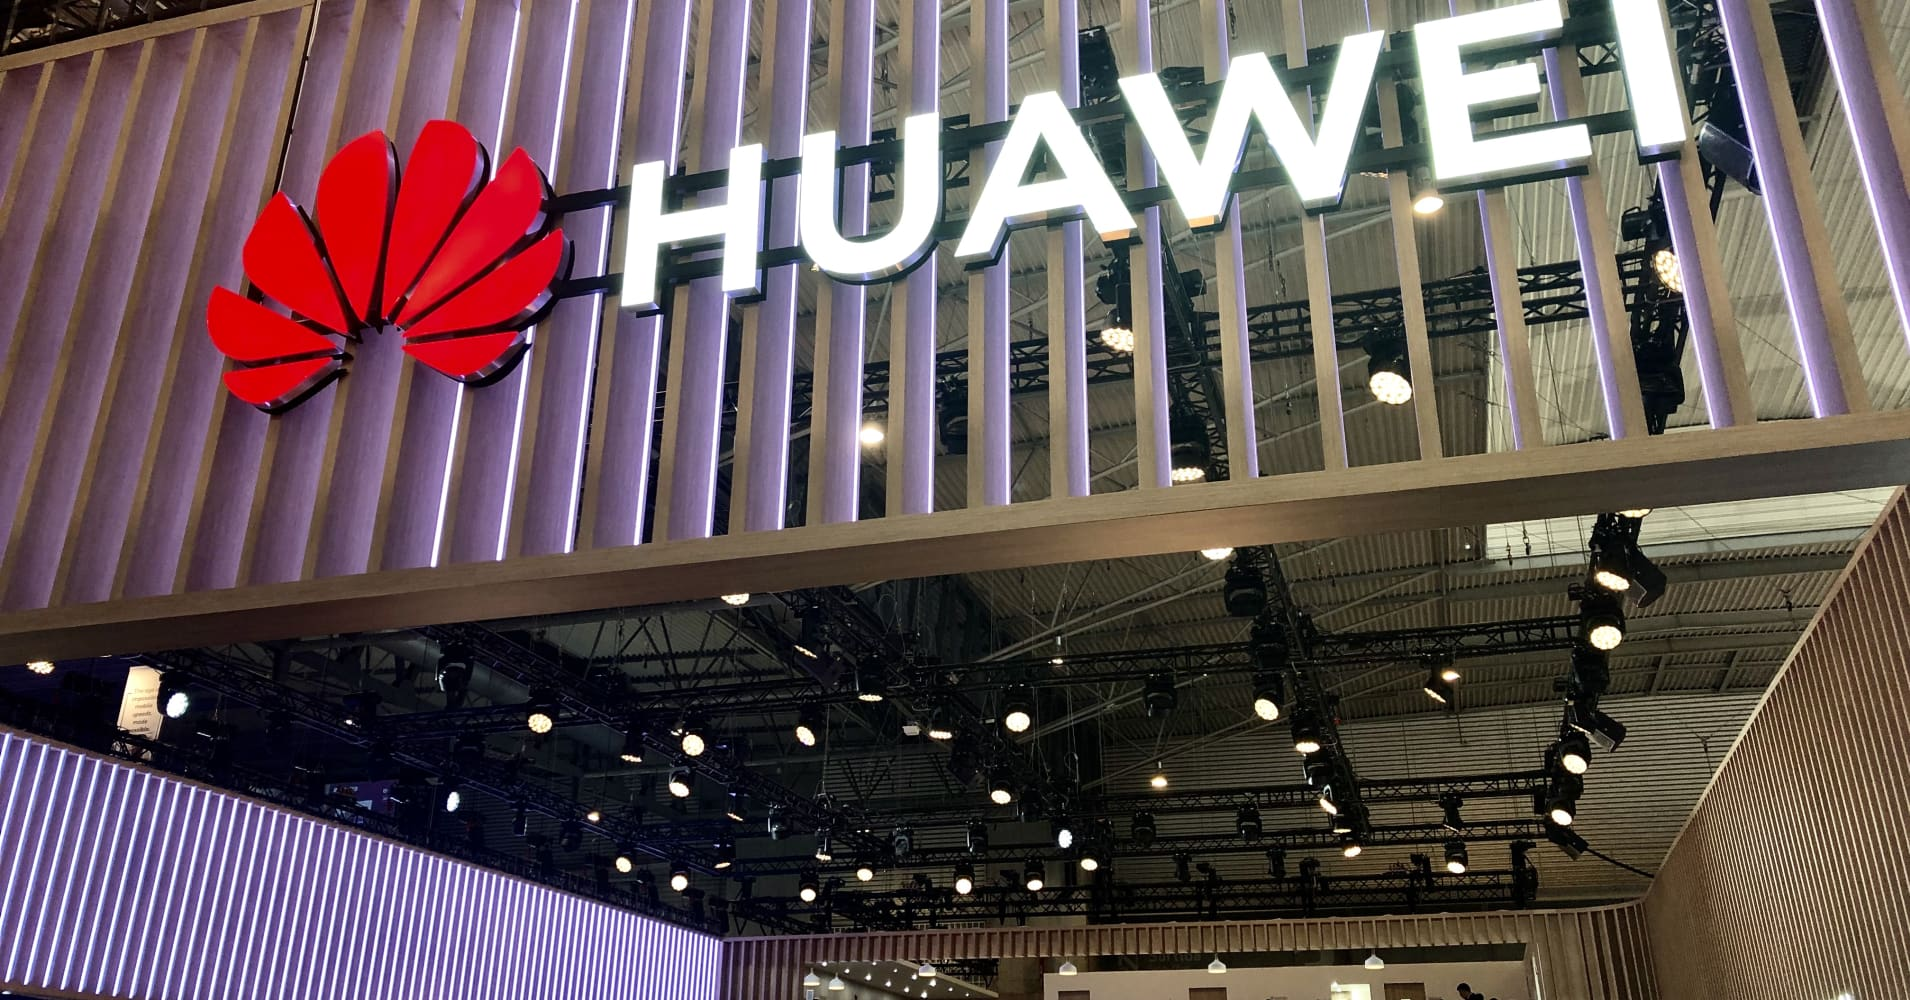 Huawei tops $100 billion revenue for first time despite political headwinds